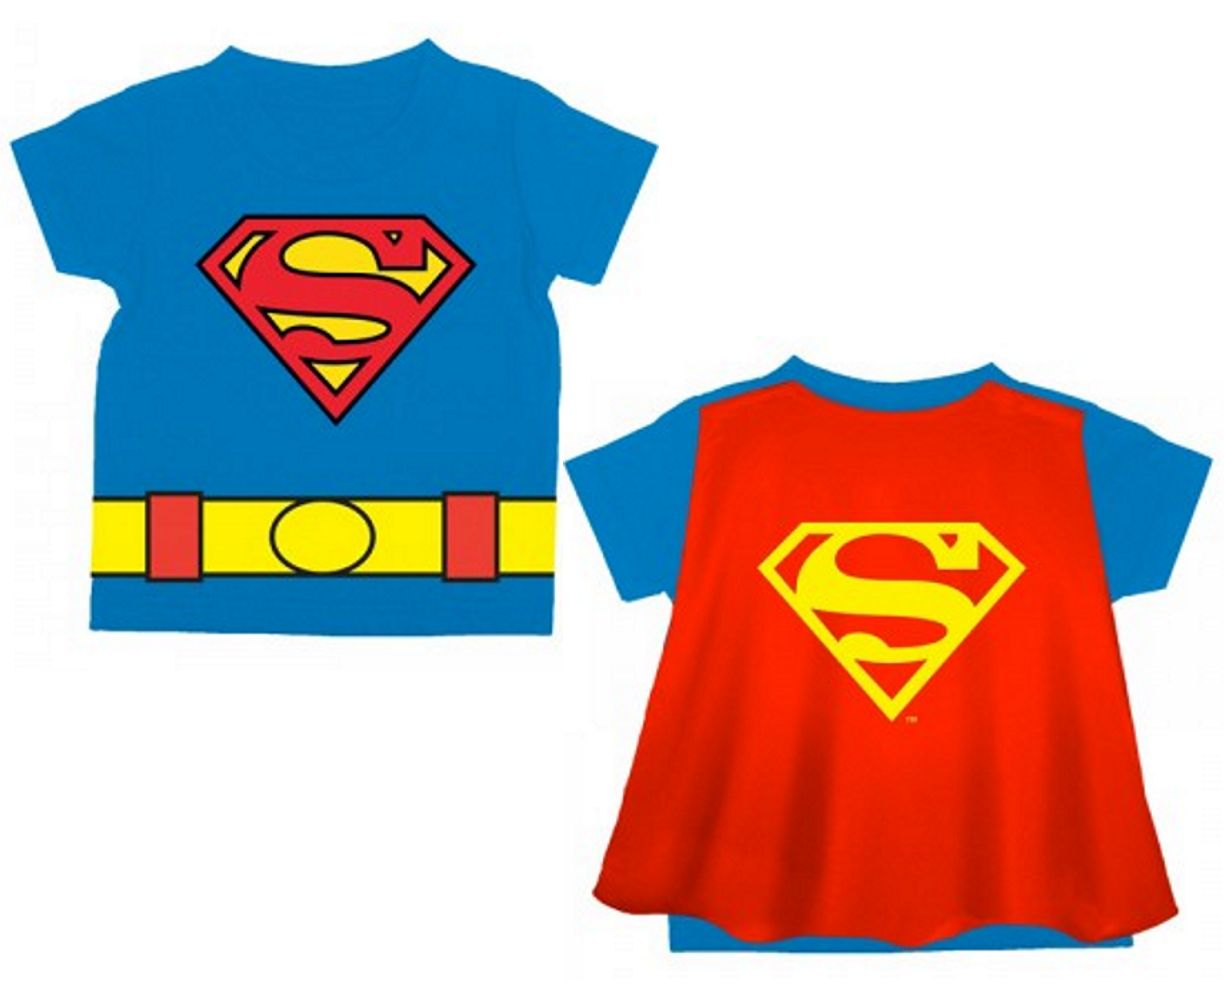 Superhero costume clipart graphic royalty free Free Superman Dress Cliparts, Download Free Clip Art, Free ... graphic royalty free